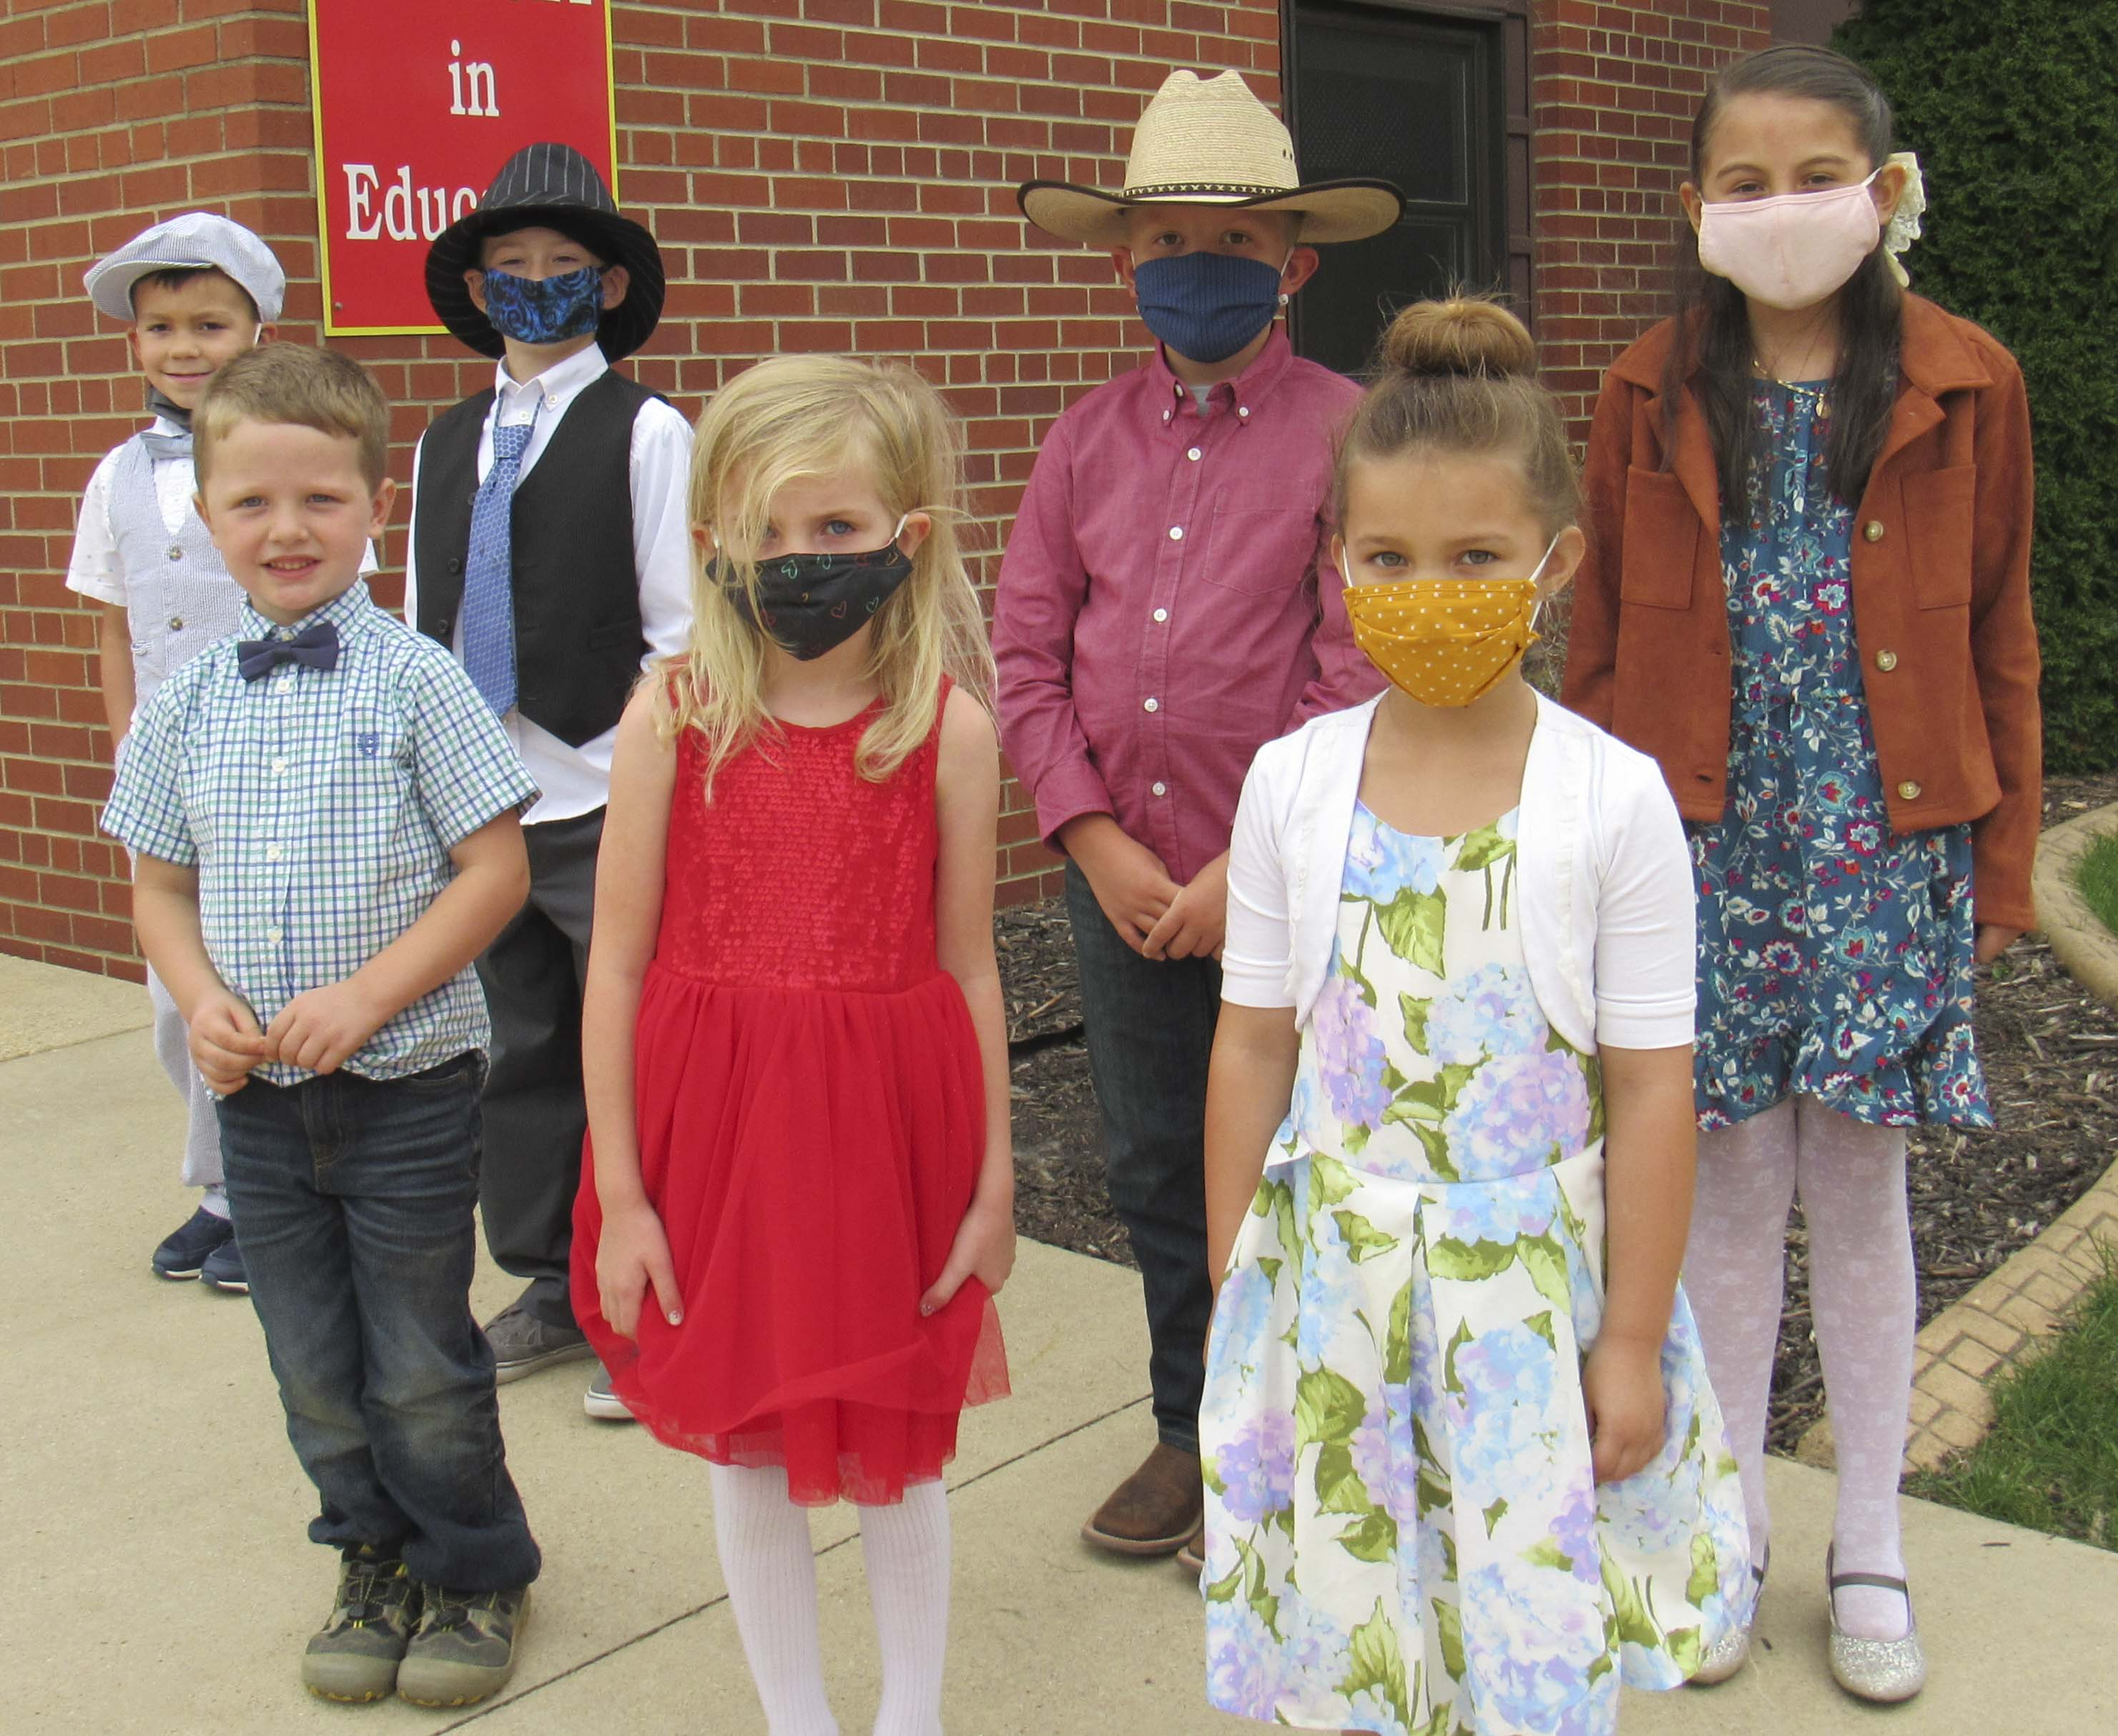 """Sacred Heart students """"Dressed for Success"""" on Thursday in their celebration of Homecoming. In front are Lincoln Grant, Millie Kremer, and Lia Mae Lyons. Back row, Davis Lyons, Elliot Chapman, Will Sperfslage, and Cynthia Fernandez."""